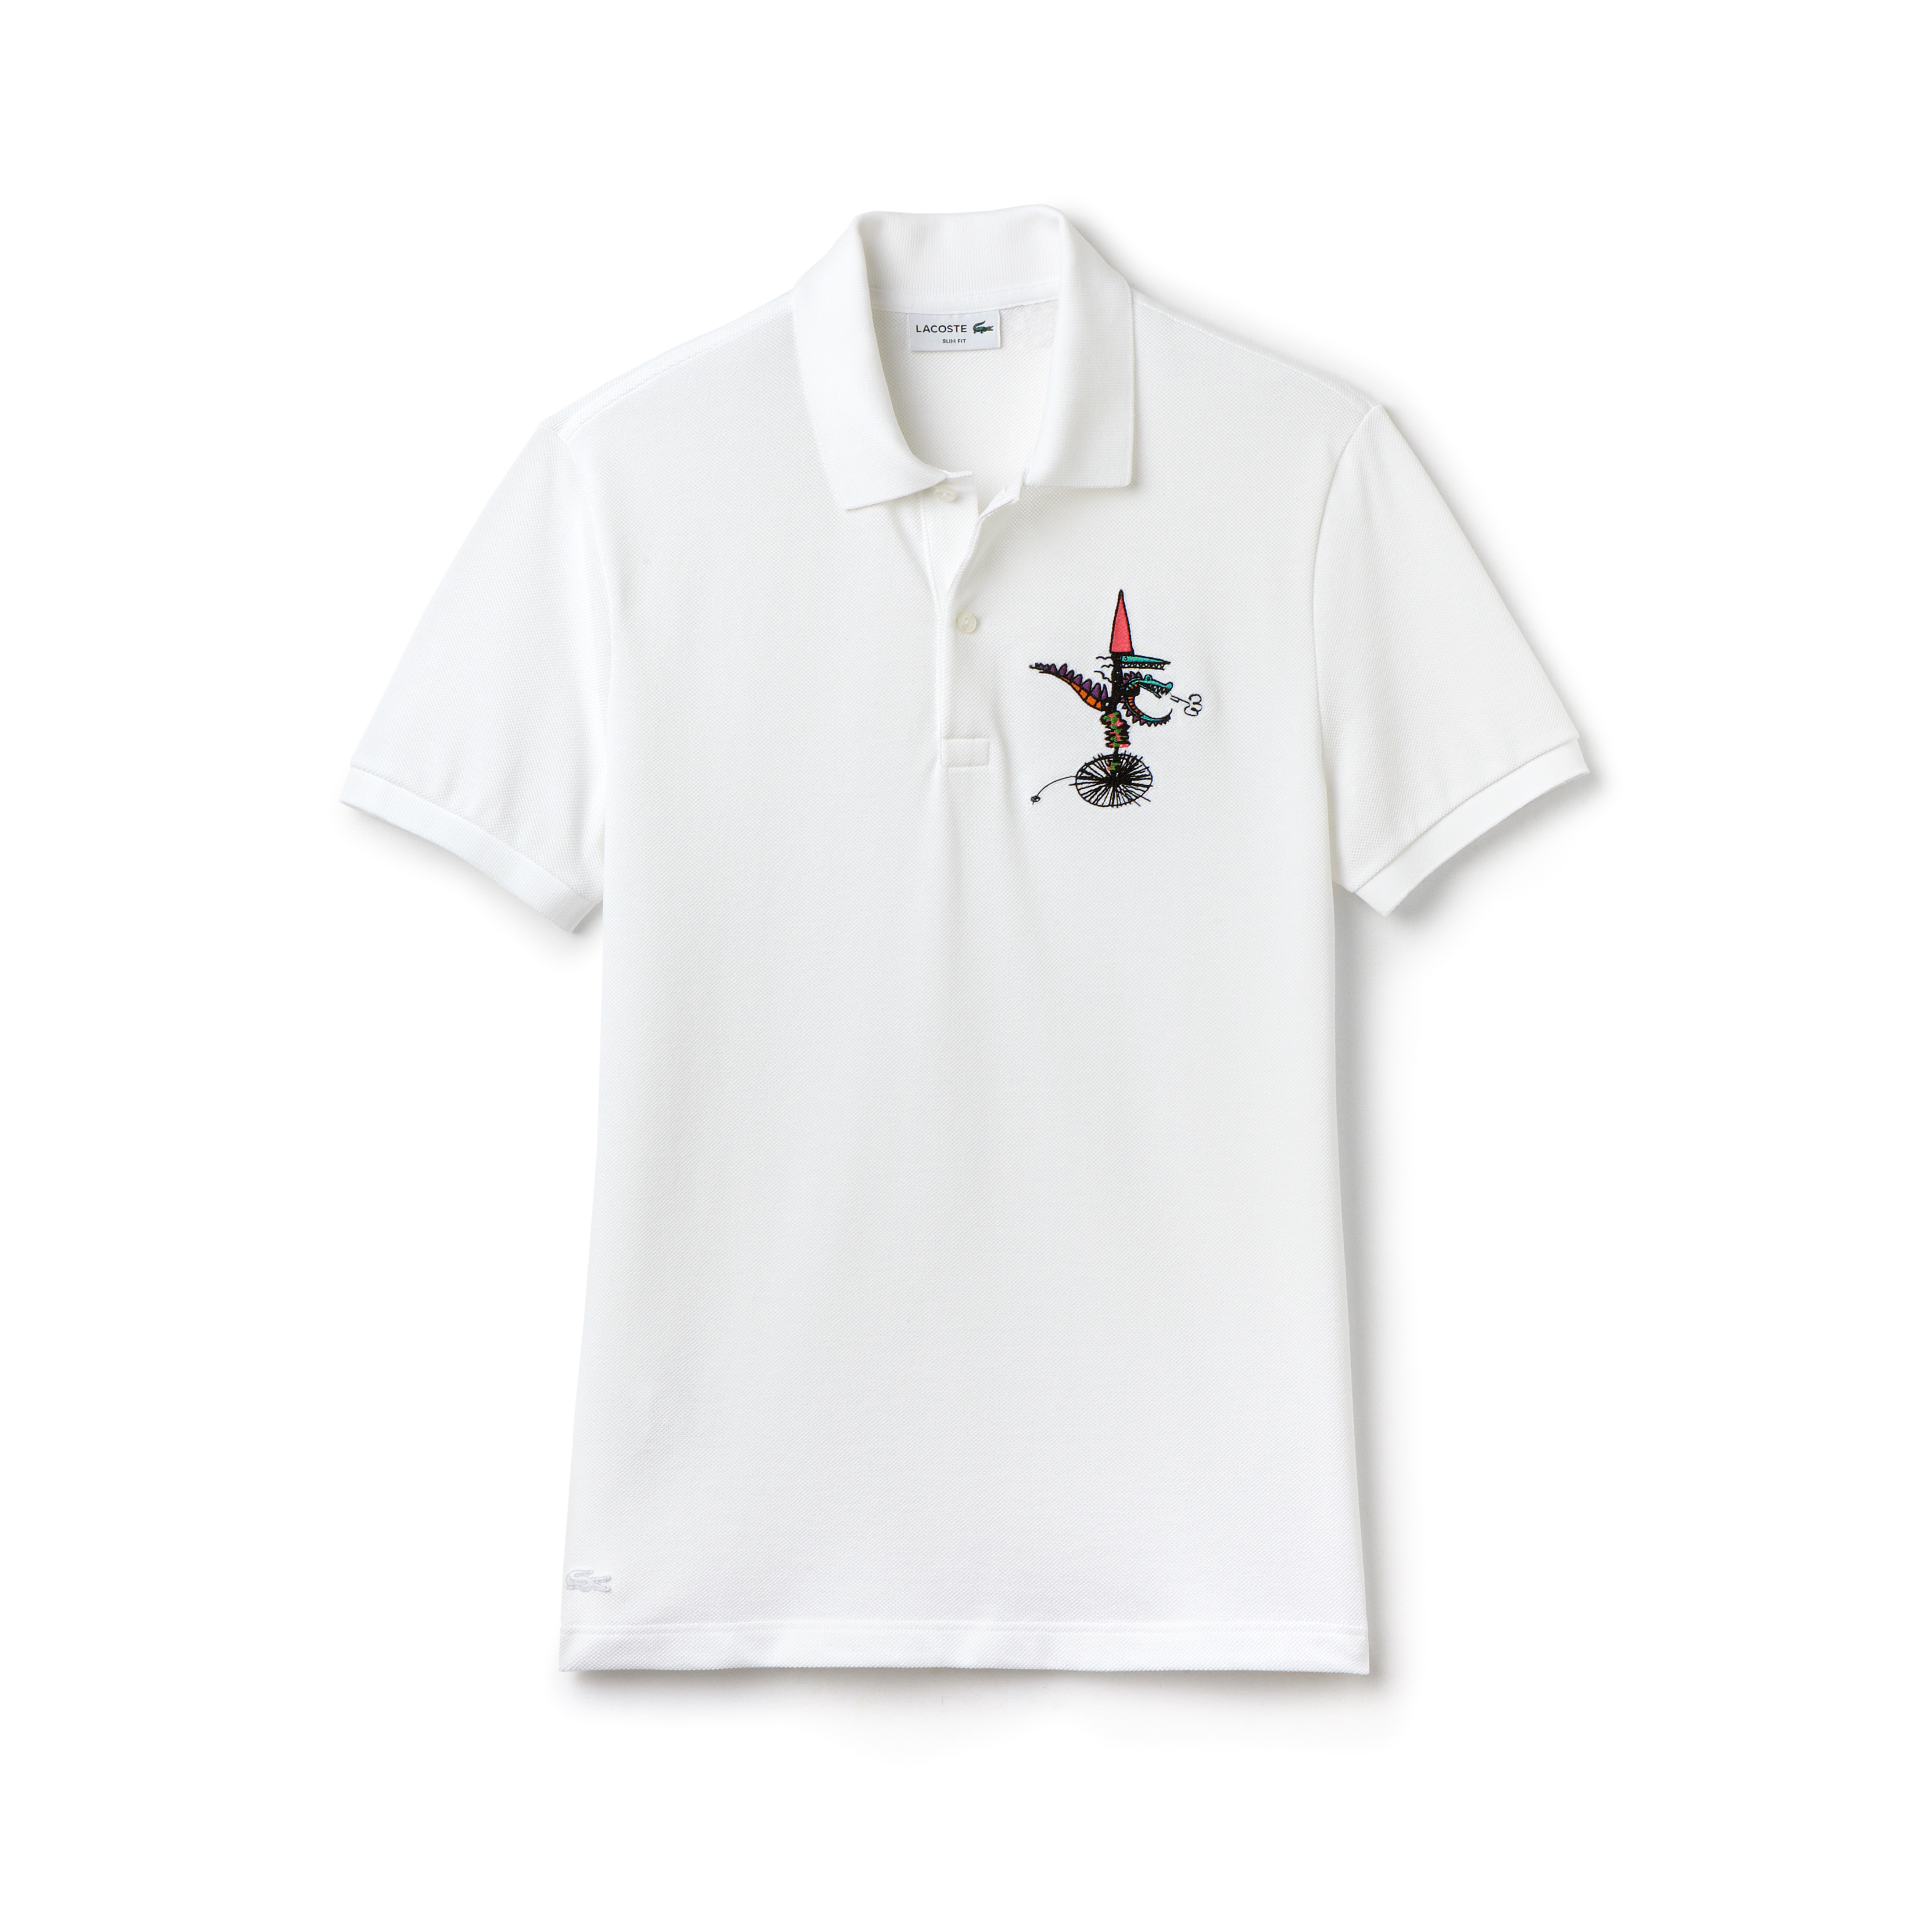 001_lacoste_by_jean_paul_goude_polo_ph0833_001